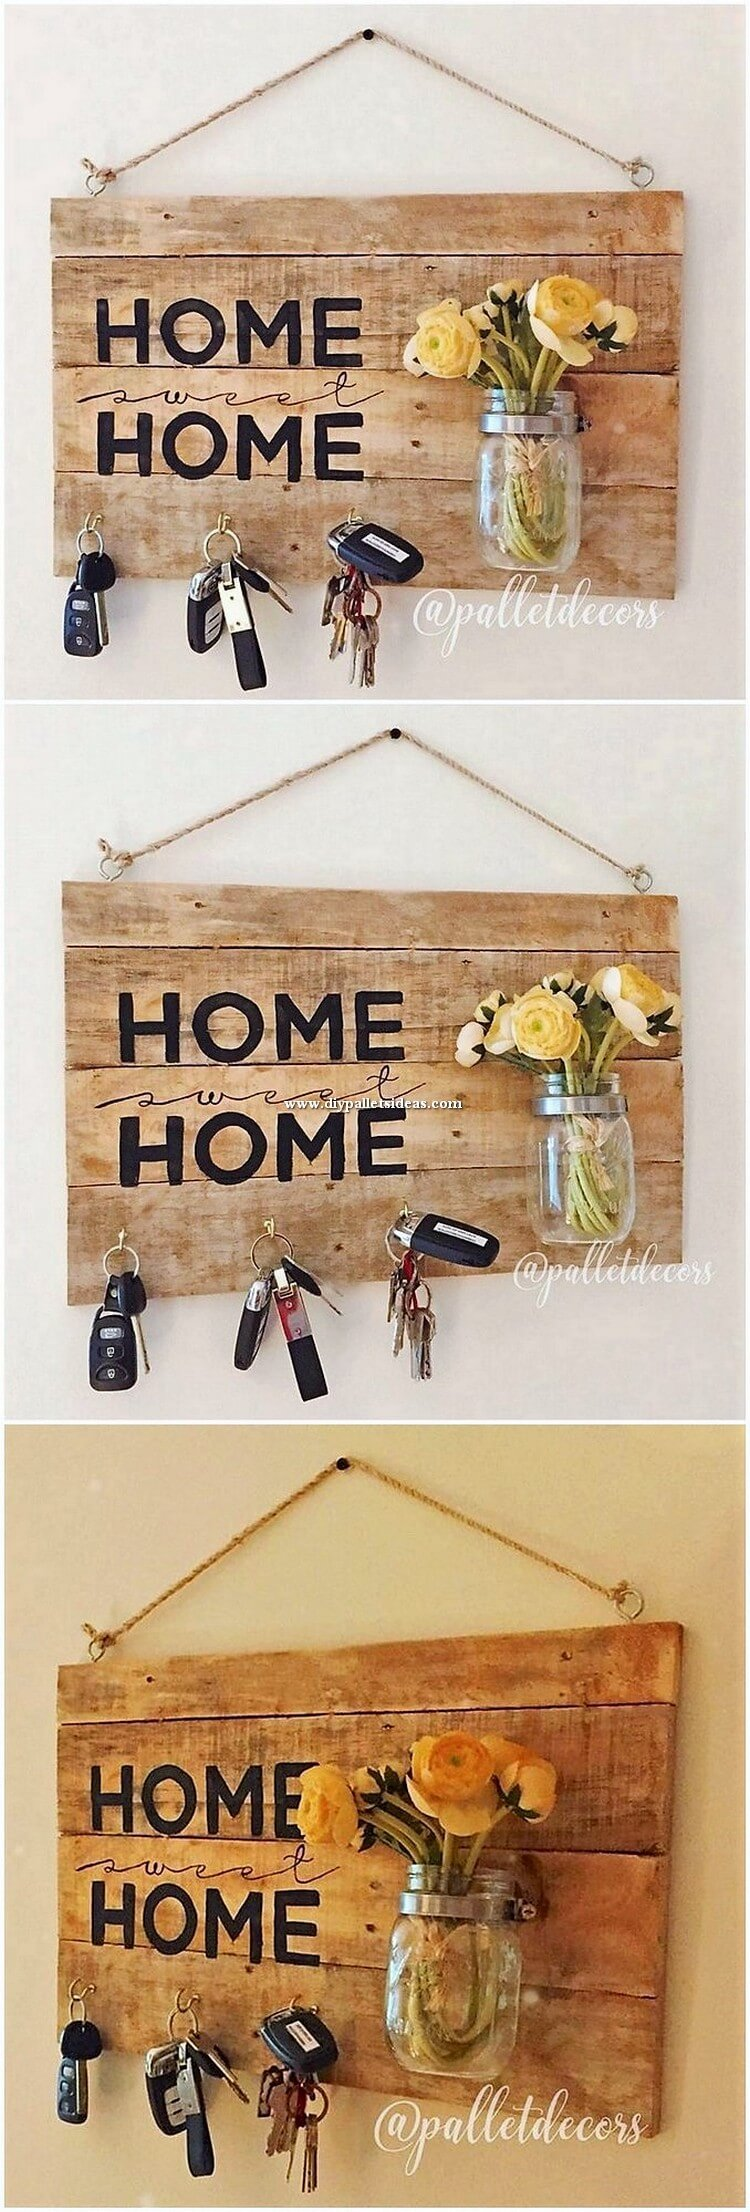 Pallet Wall Decor with Key Rack